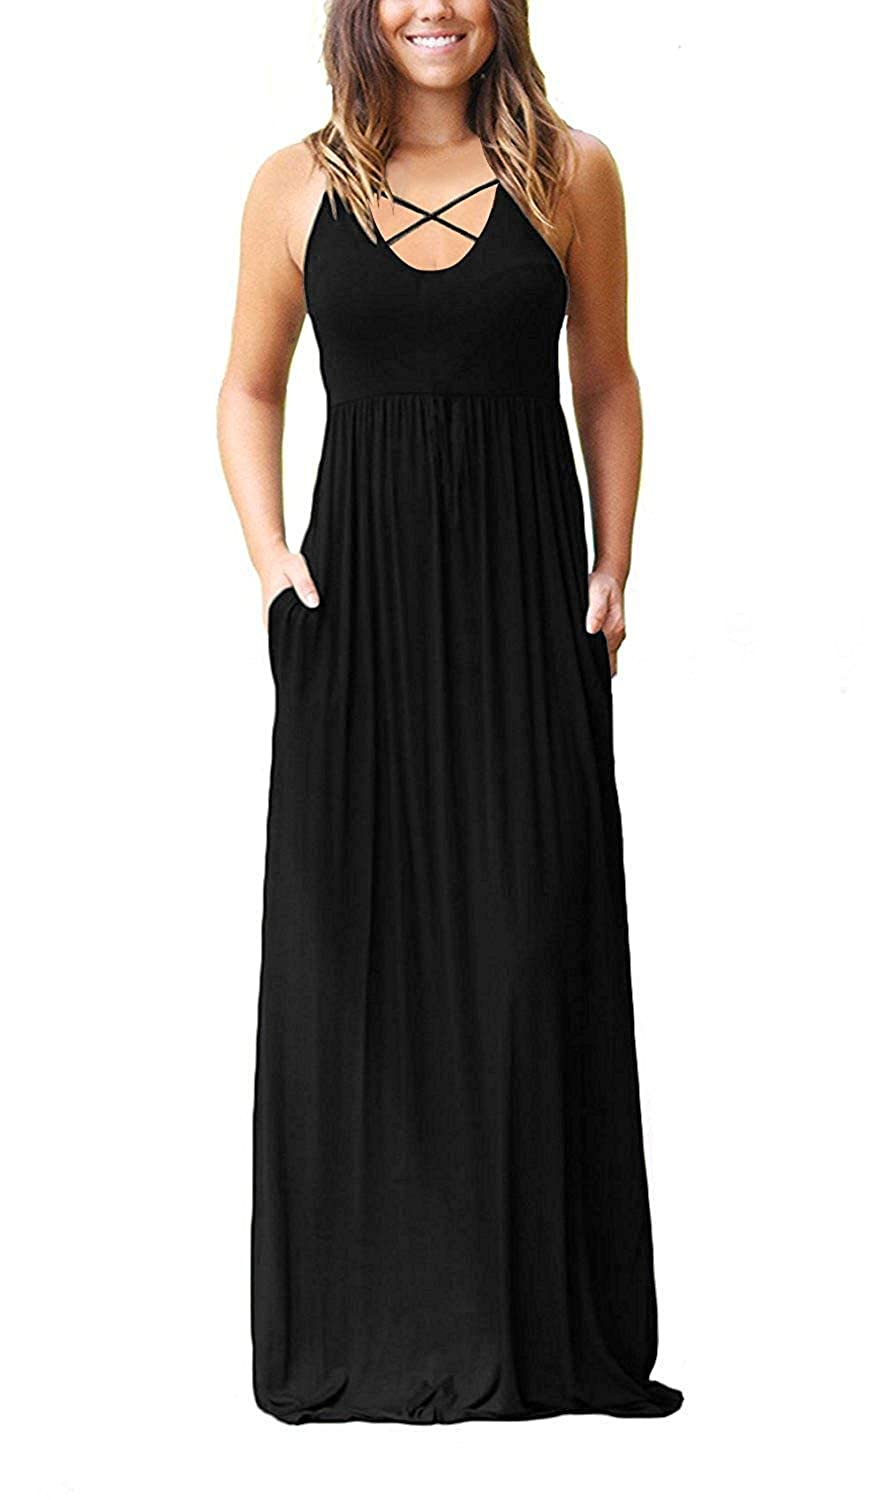 Lilbetter Women Long Sleeve Loose Plain Maxi Dresses Casual Long Dresses With Pockets by Lilbetter